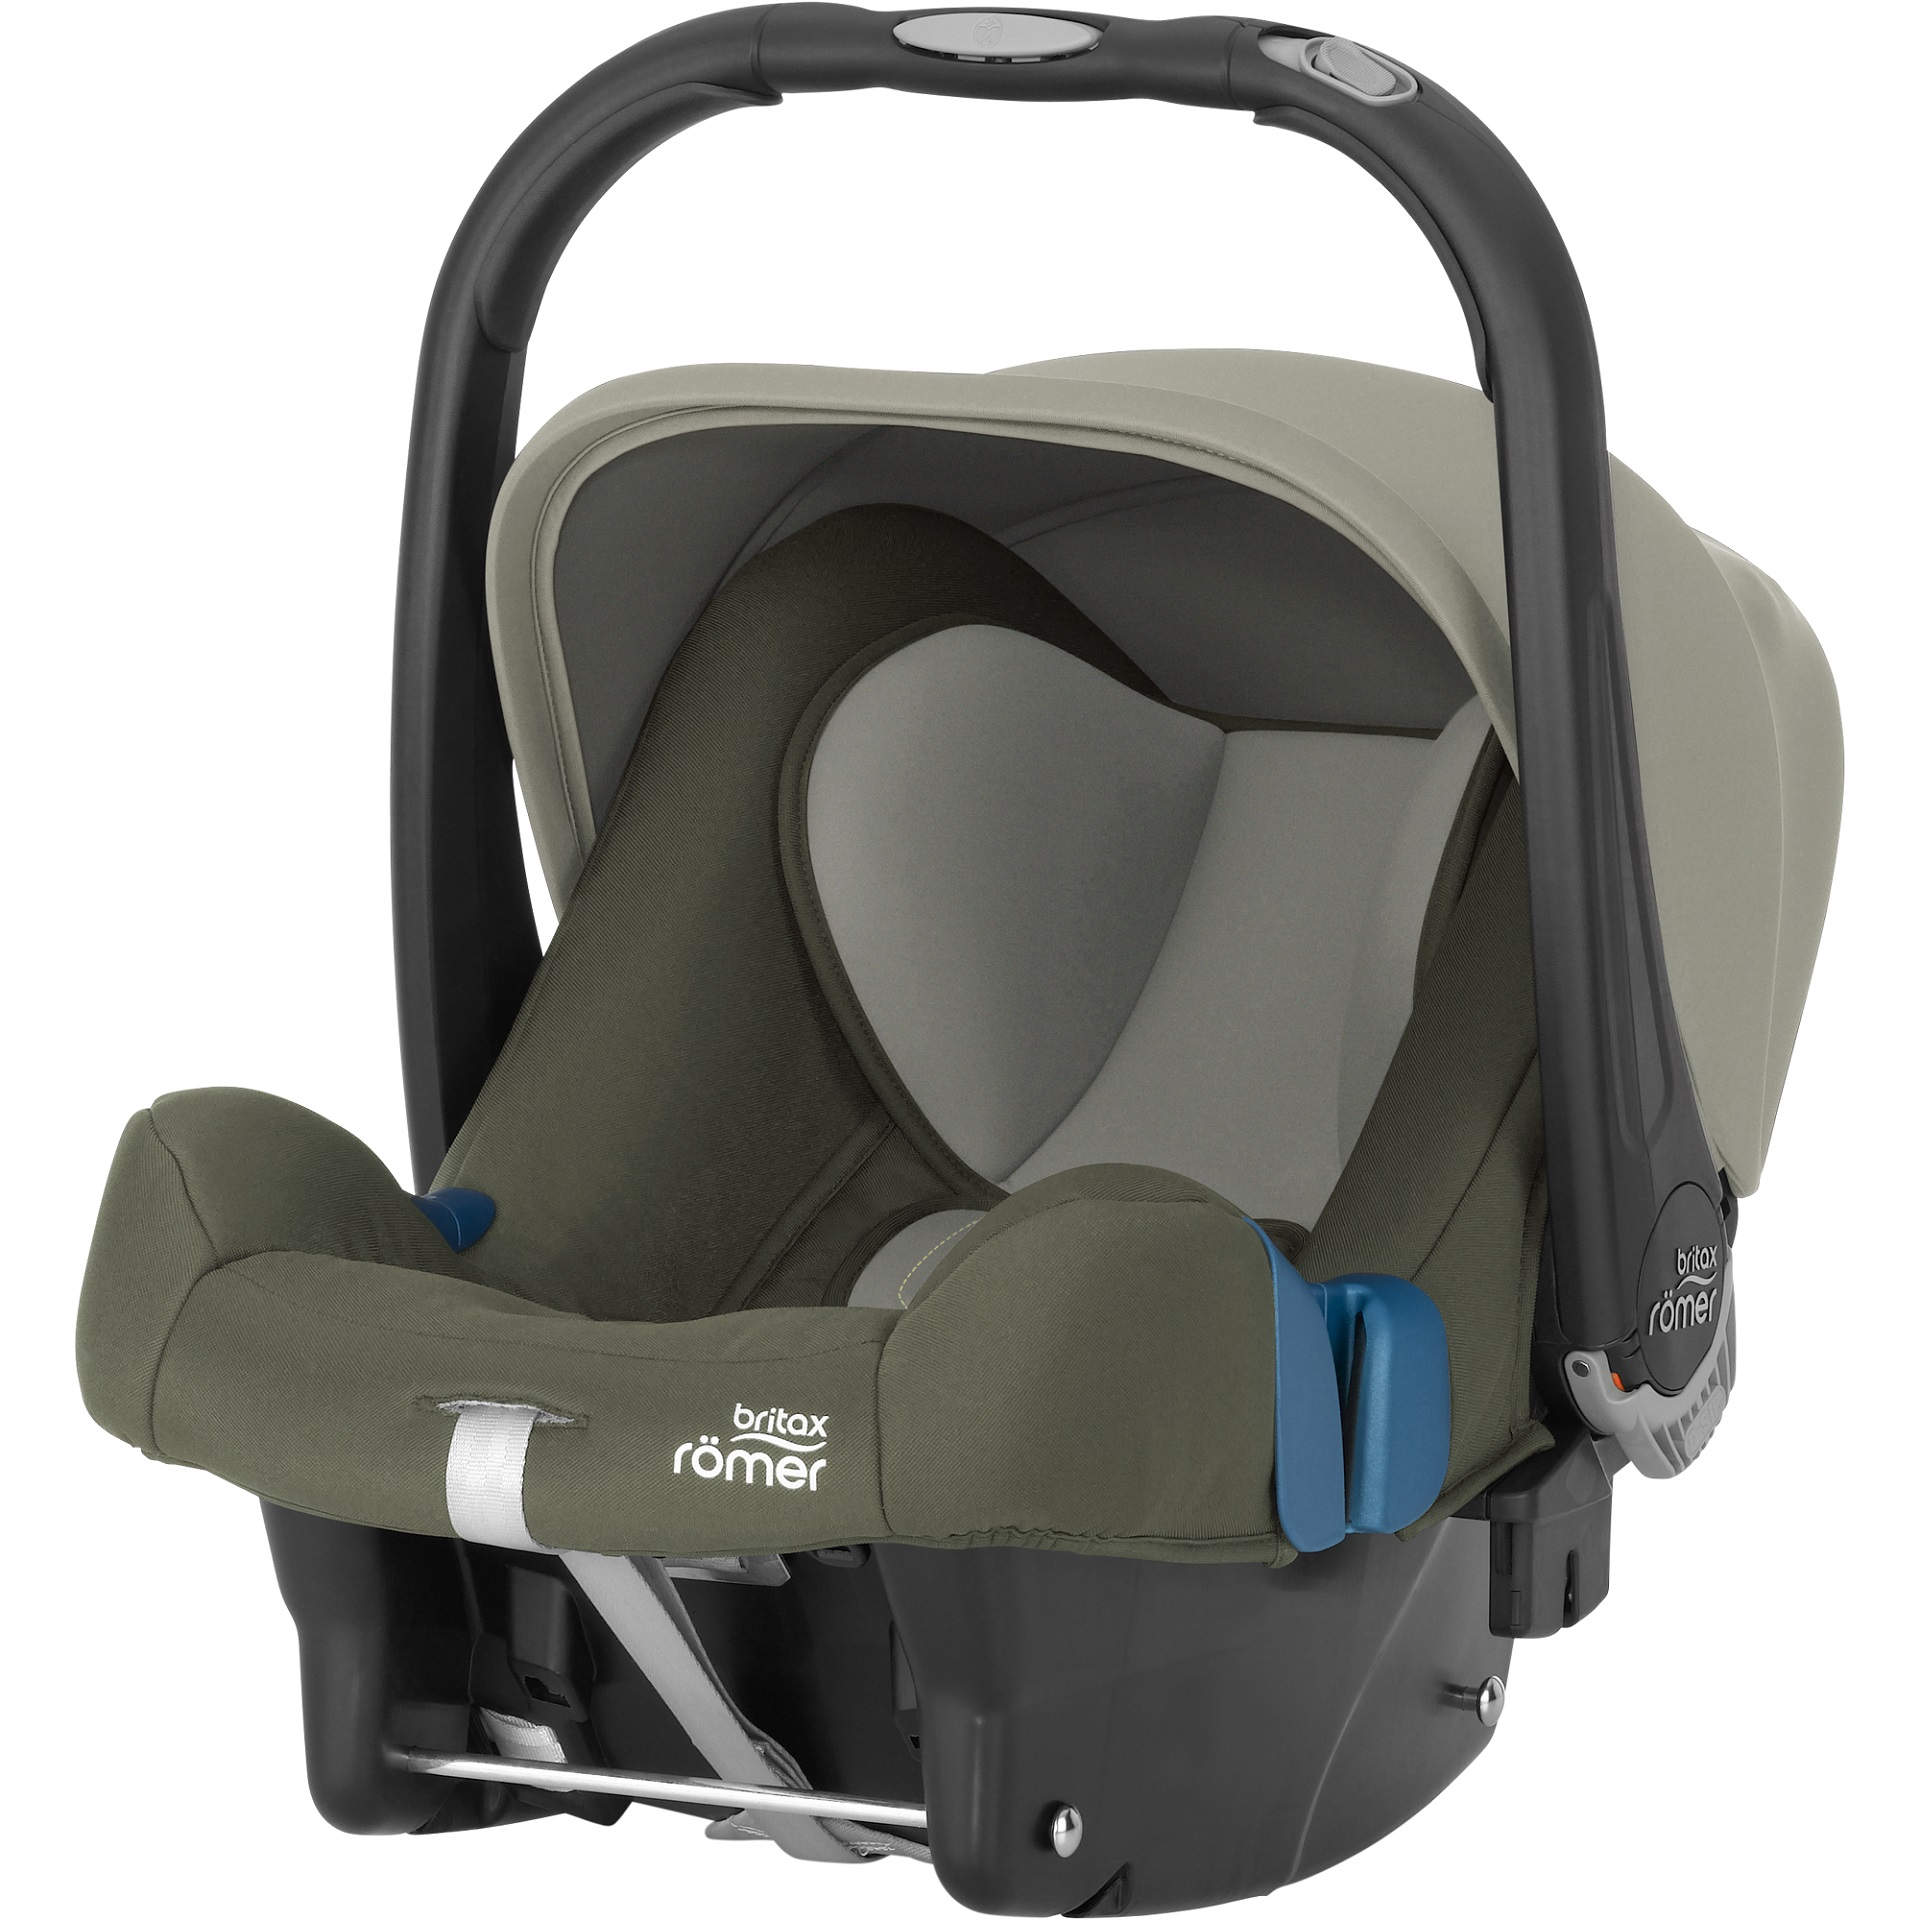 si ge auto cosy baby safe plus shr ii par britax r mer 2018 olive green acheter sur kidsroom. Black Bedroom Furniture Sets. Home Design Ideas